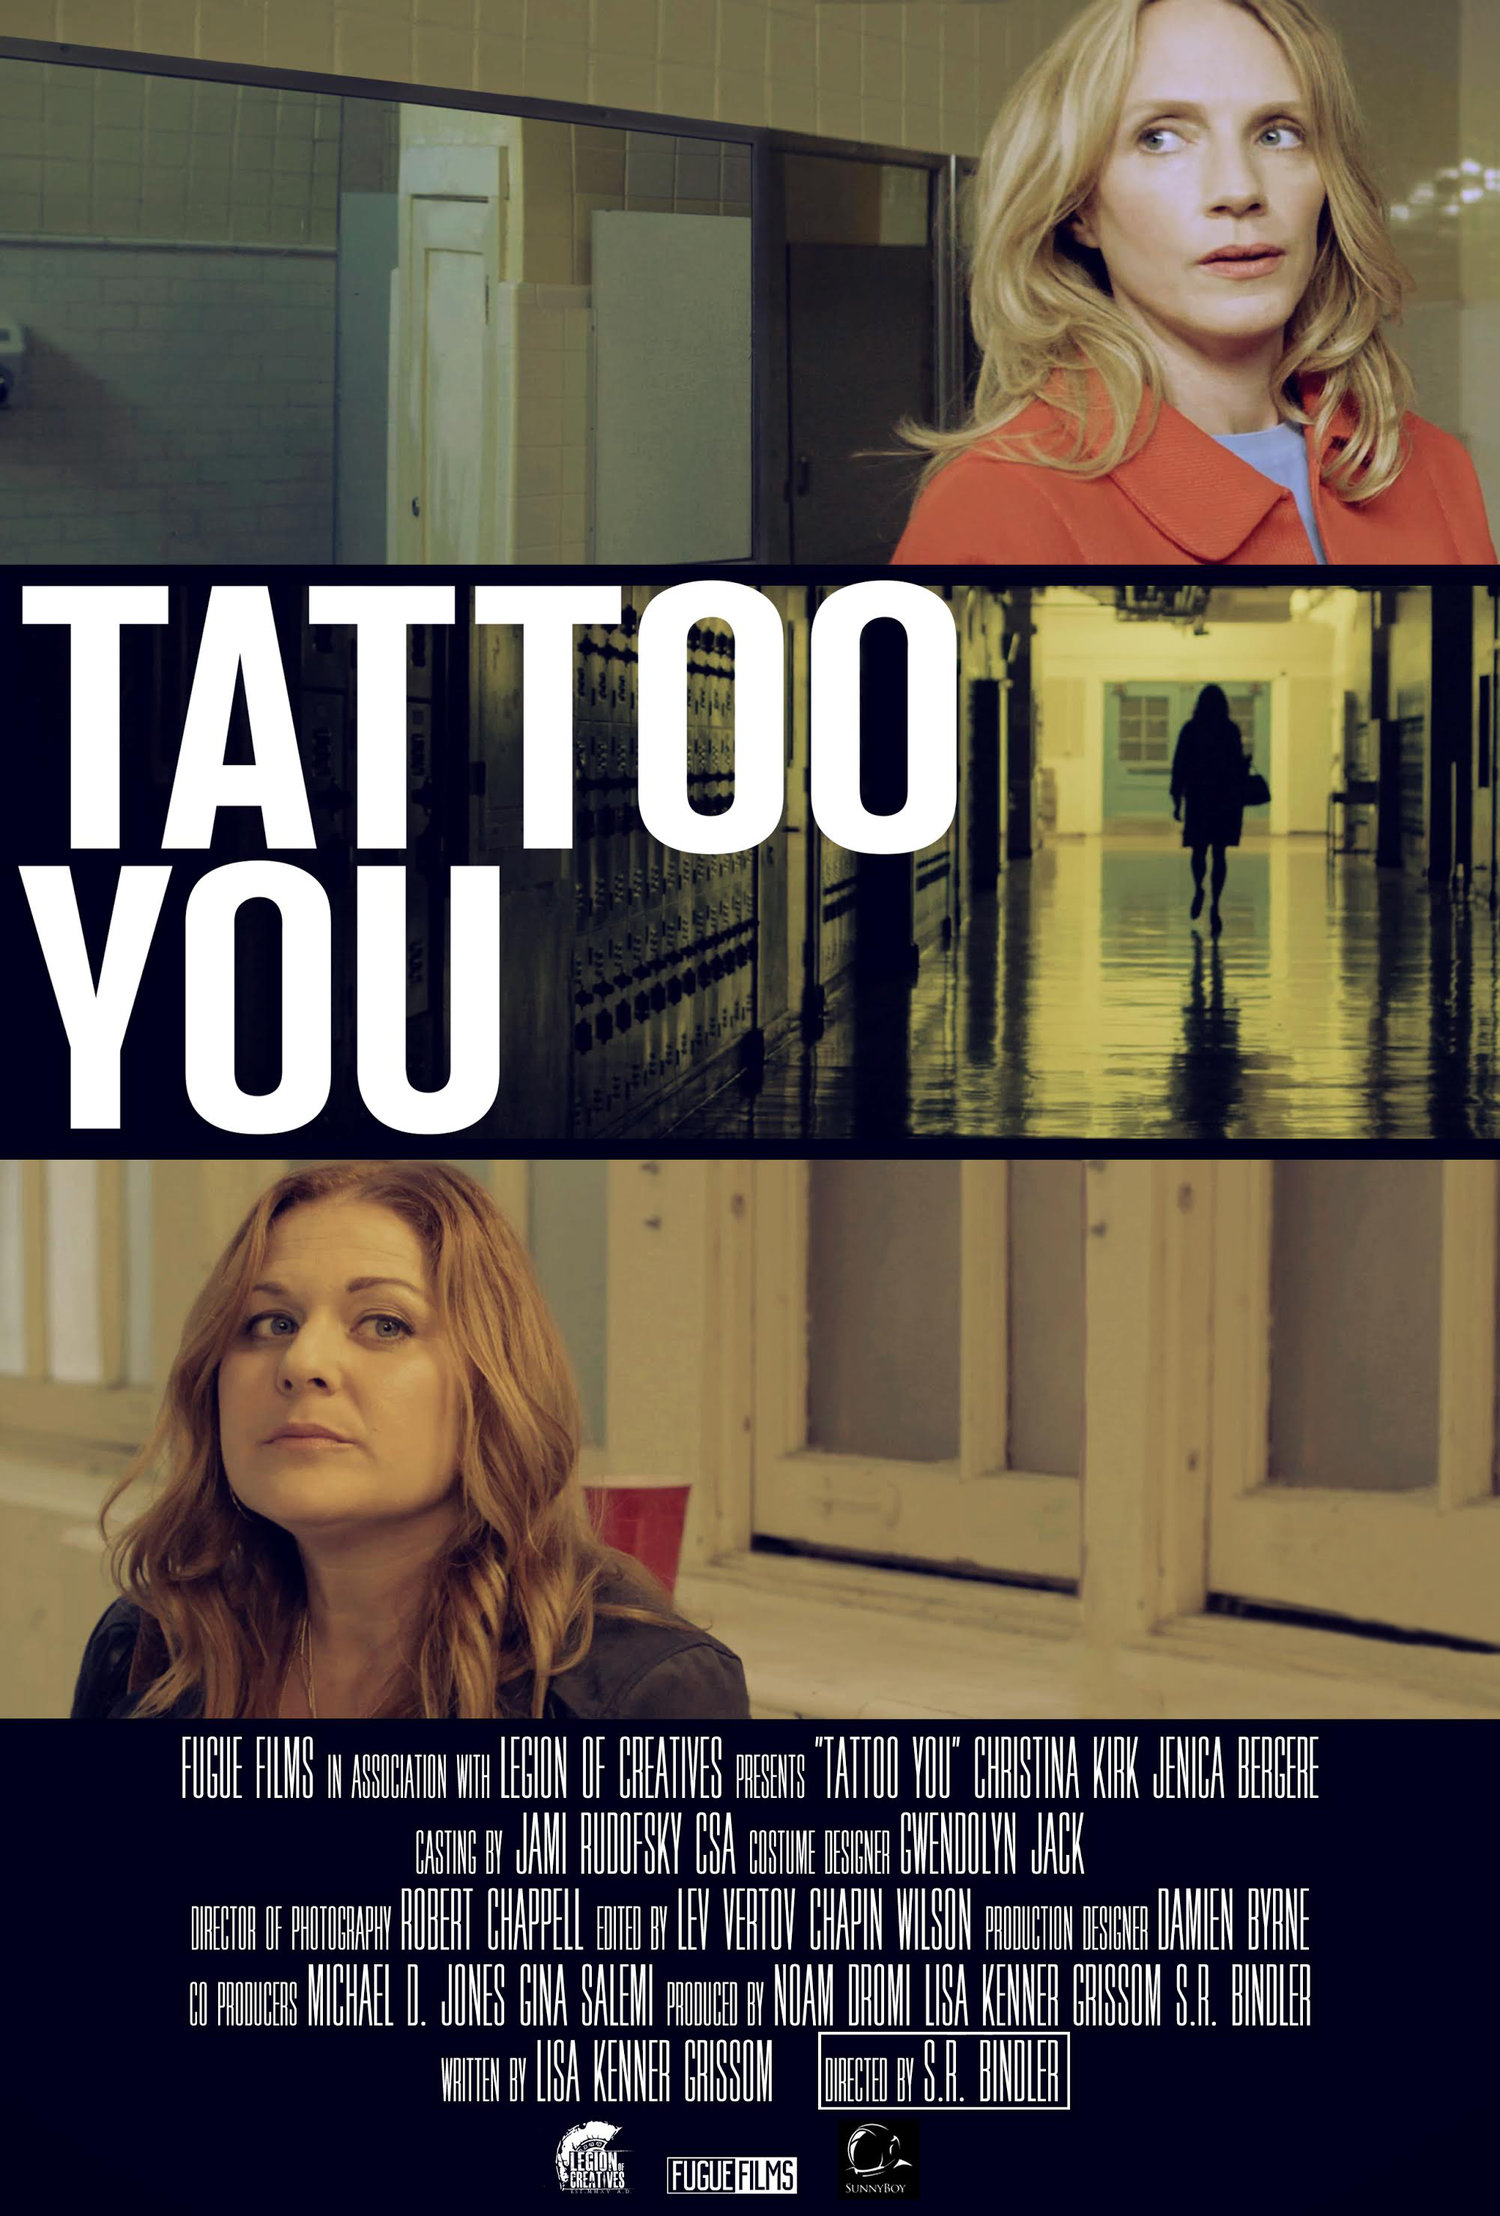 Tattoo You The Film